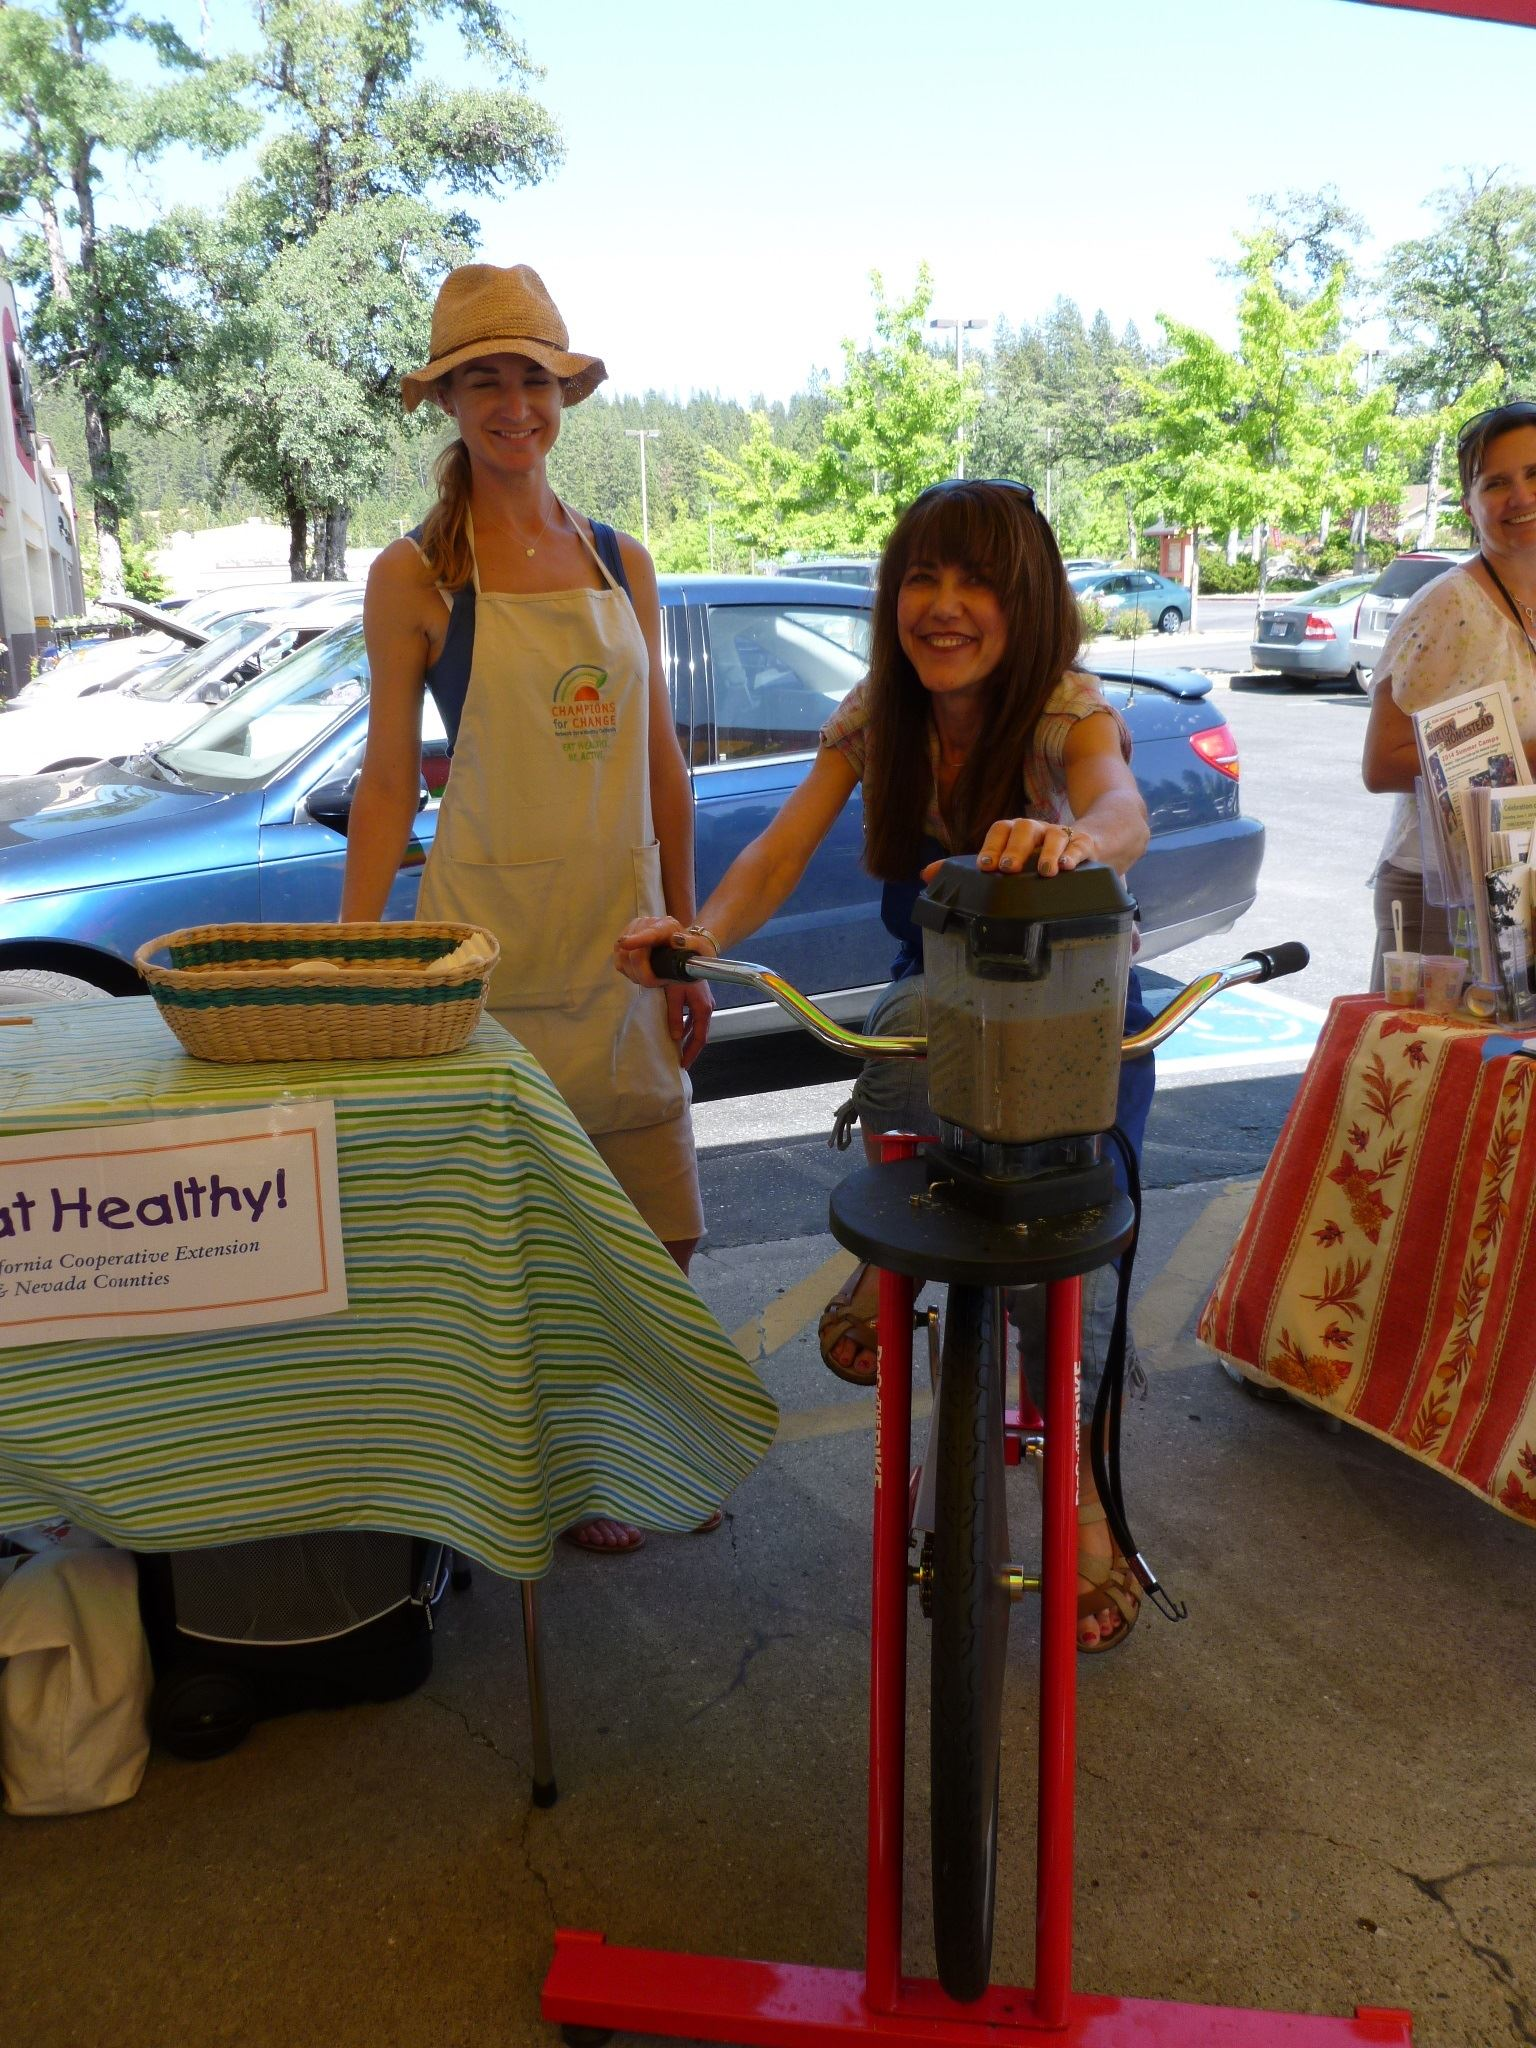 Woman on stationary bike peddling to create a smoothie